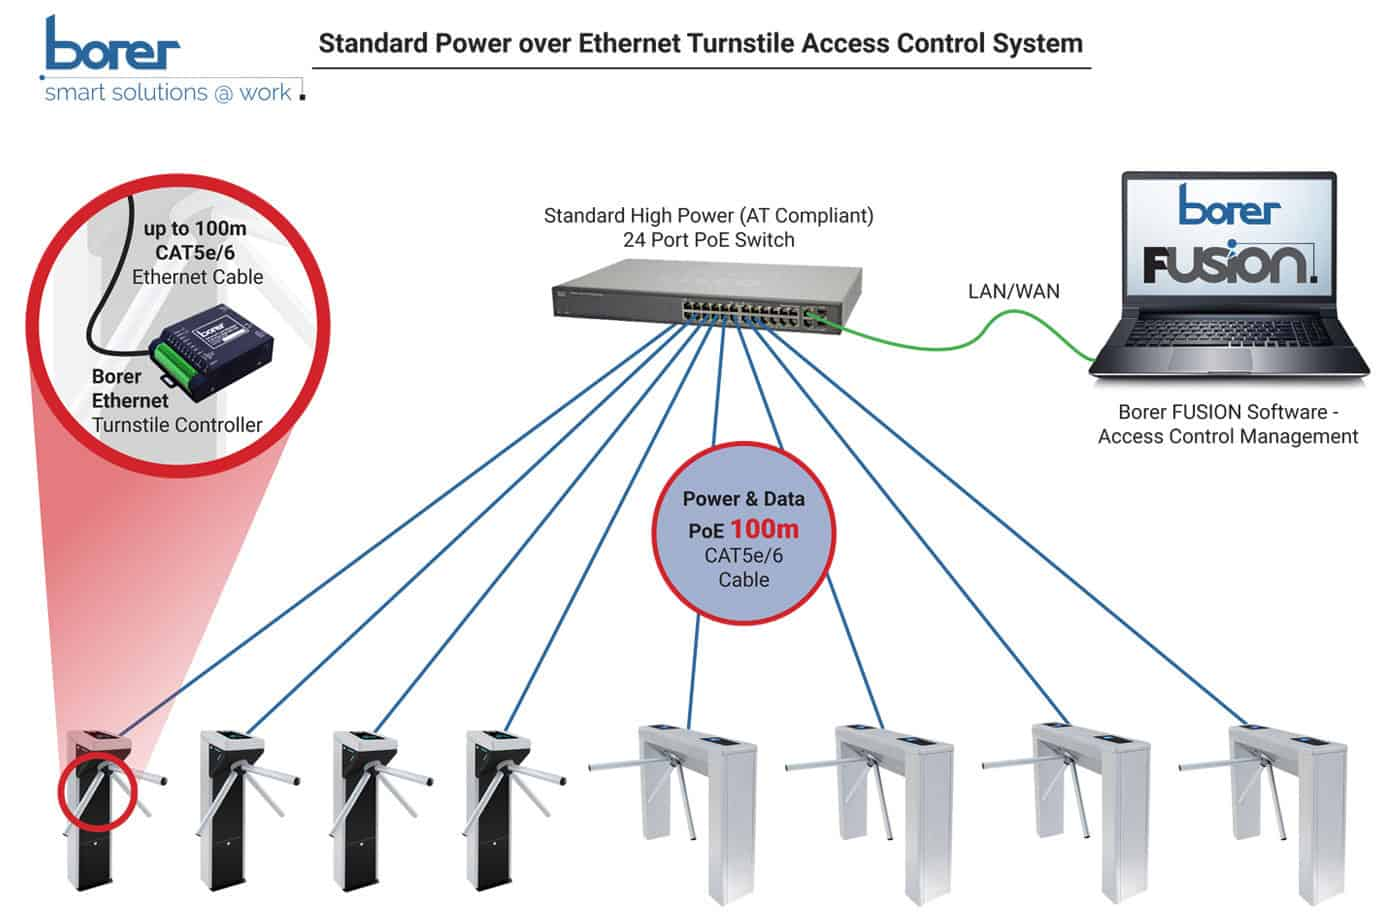 Standard PoE Turnstile Access Control System